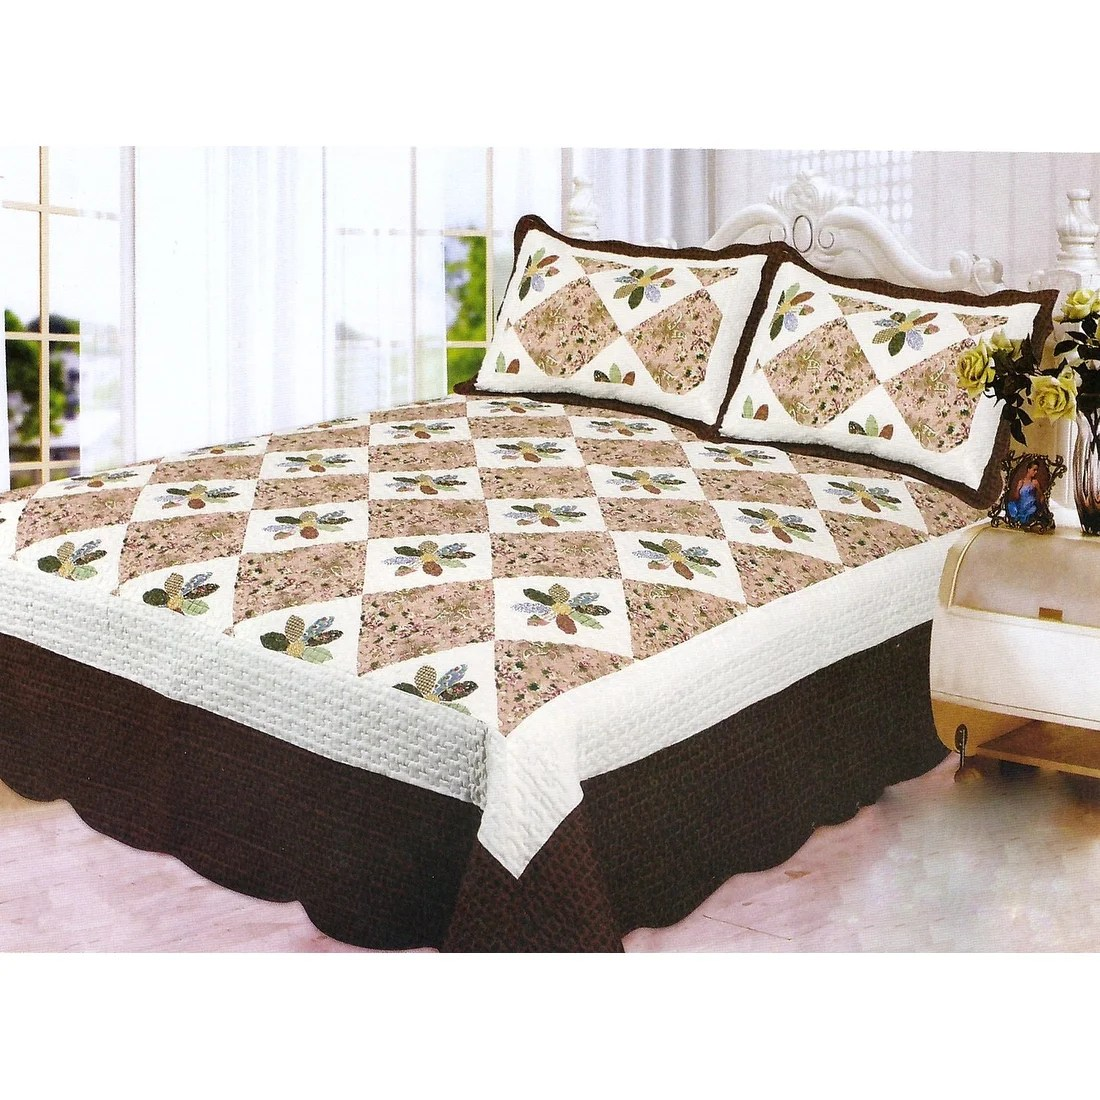 Bed Coverlet 3pcs Quilt Set Brown White Multi Color Modern Design Quilt Bedspread Bed Coverlet